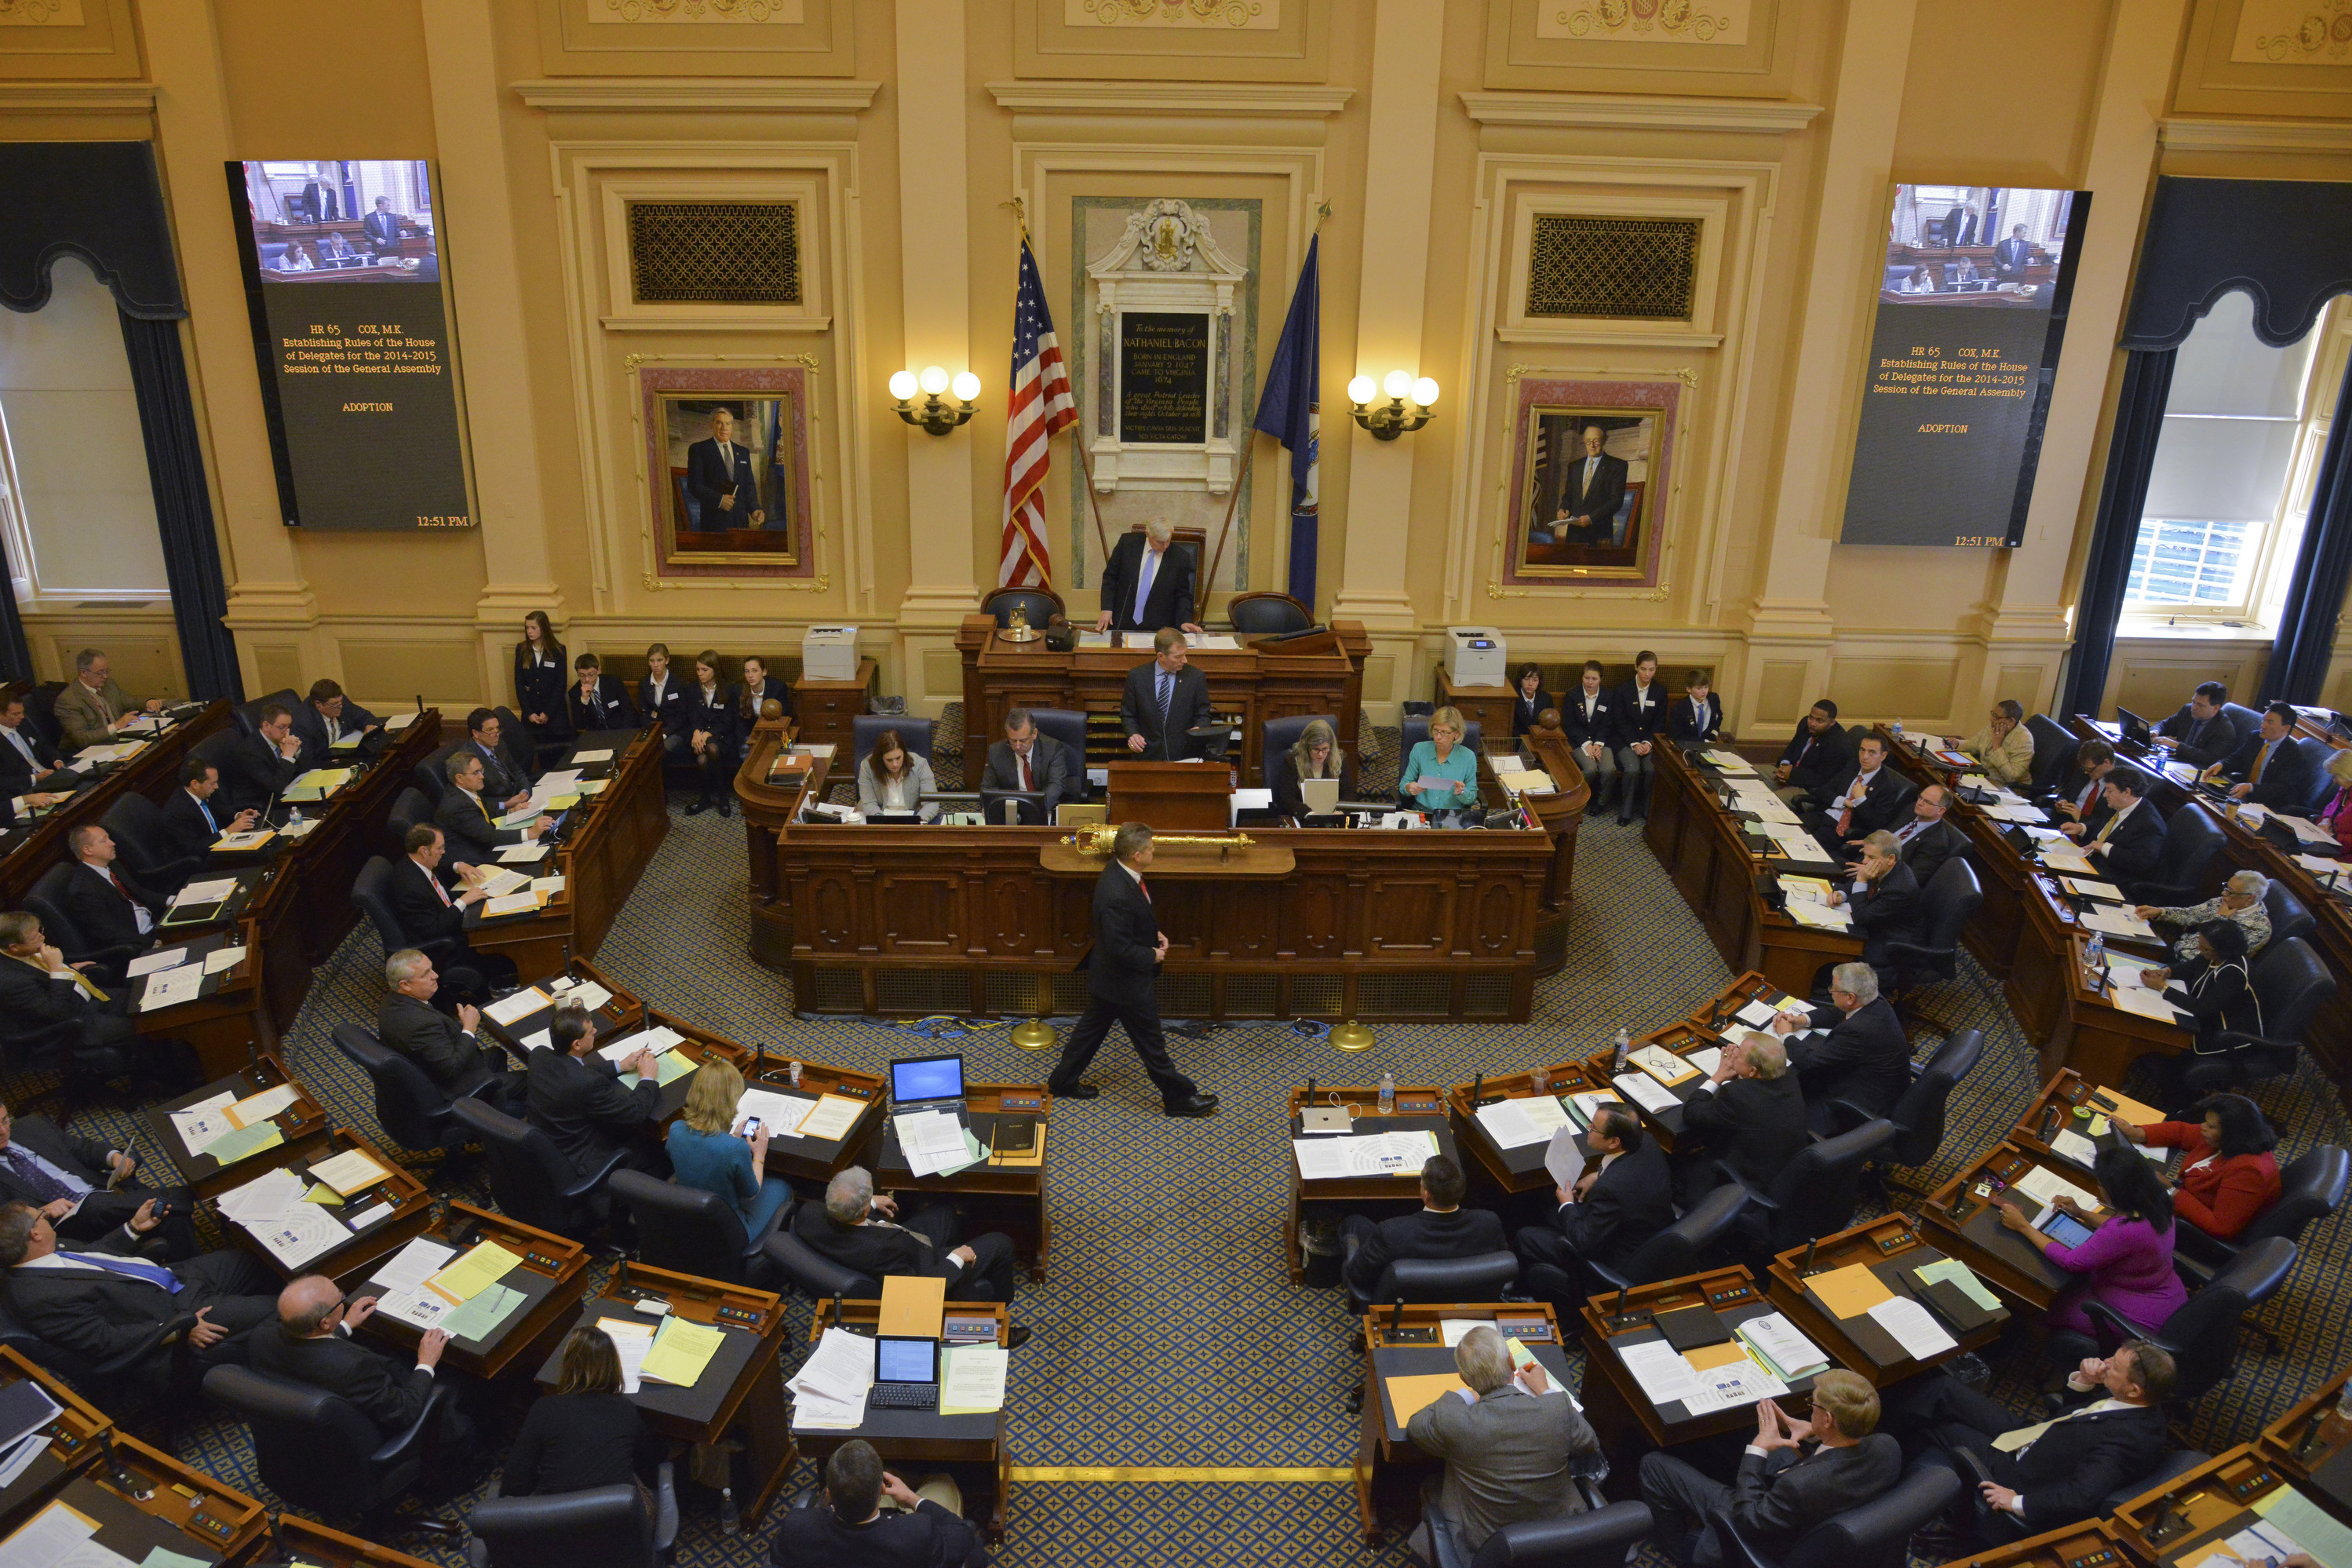 Control of the Virginia House of Delegates may come down to a game of chance per state law